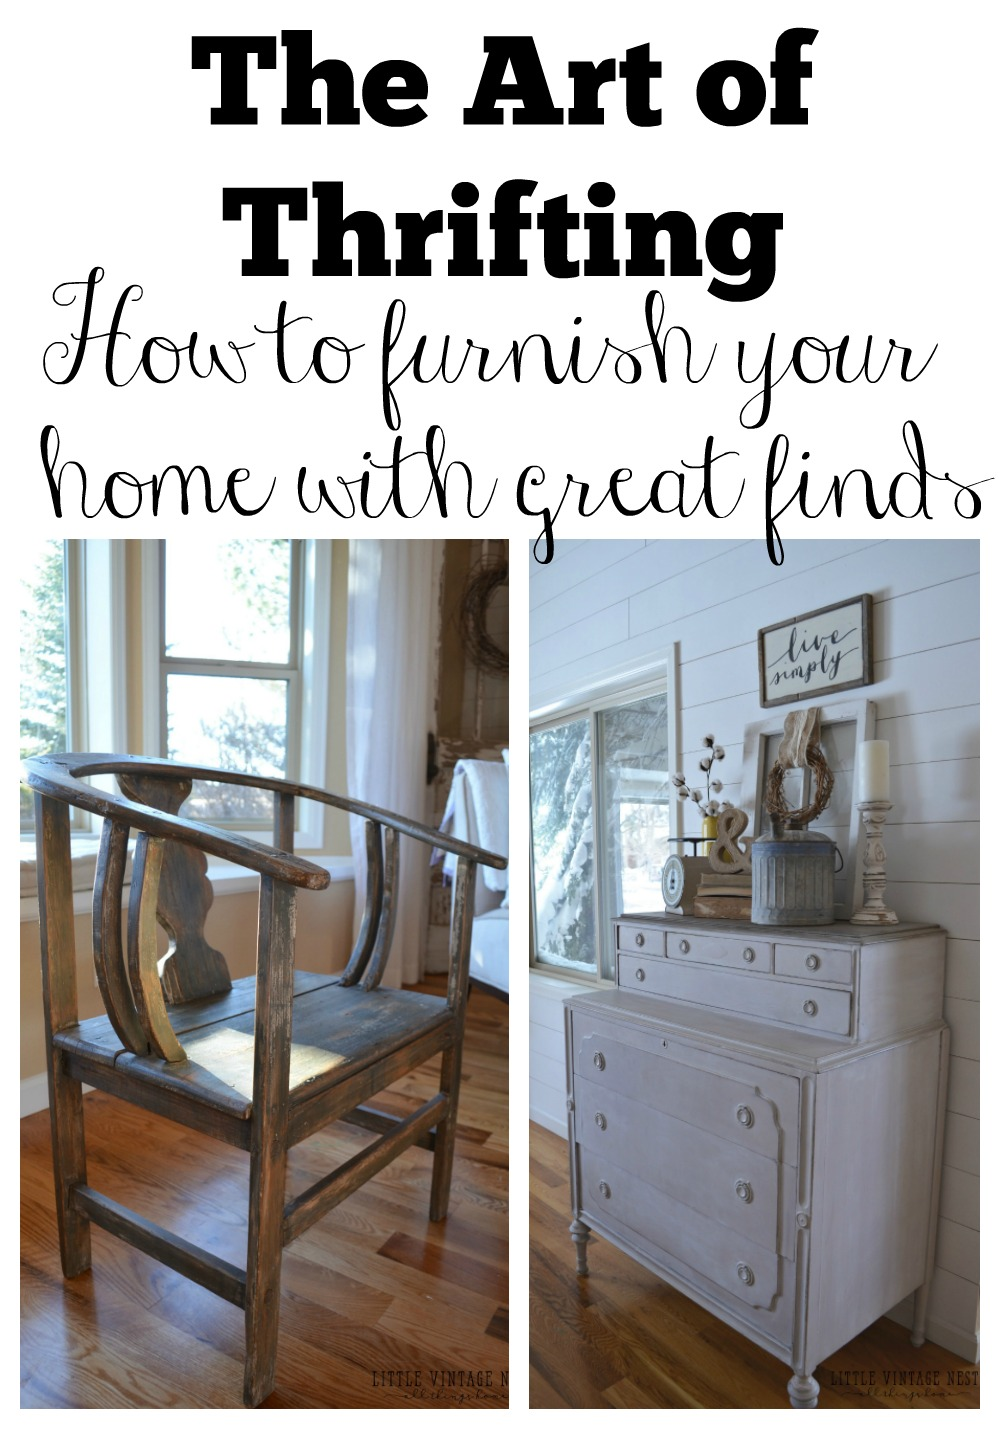 the art of thriftinghow to furnish your home with great finds - How To Furnish Your Home